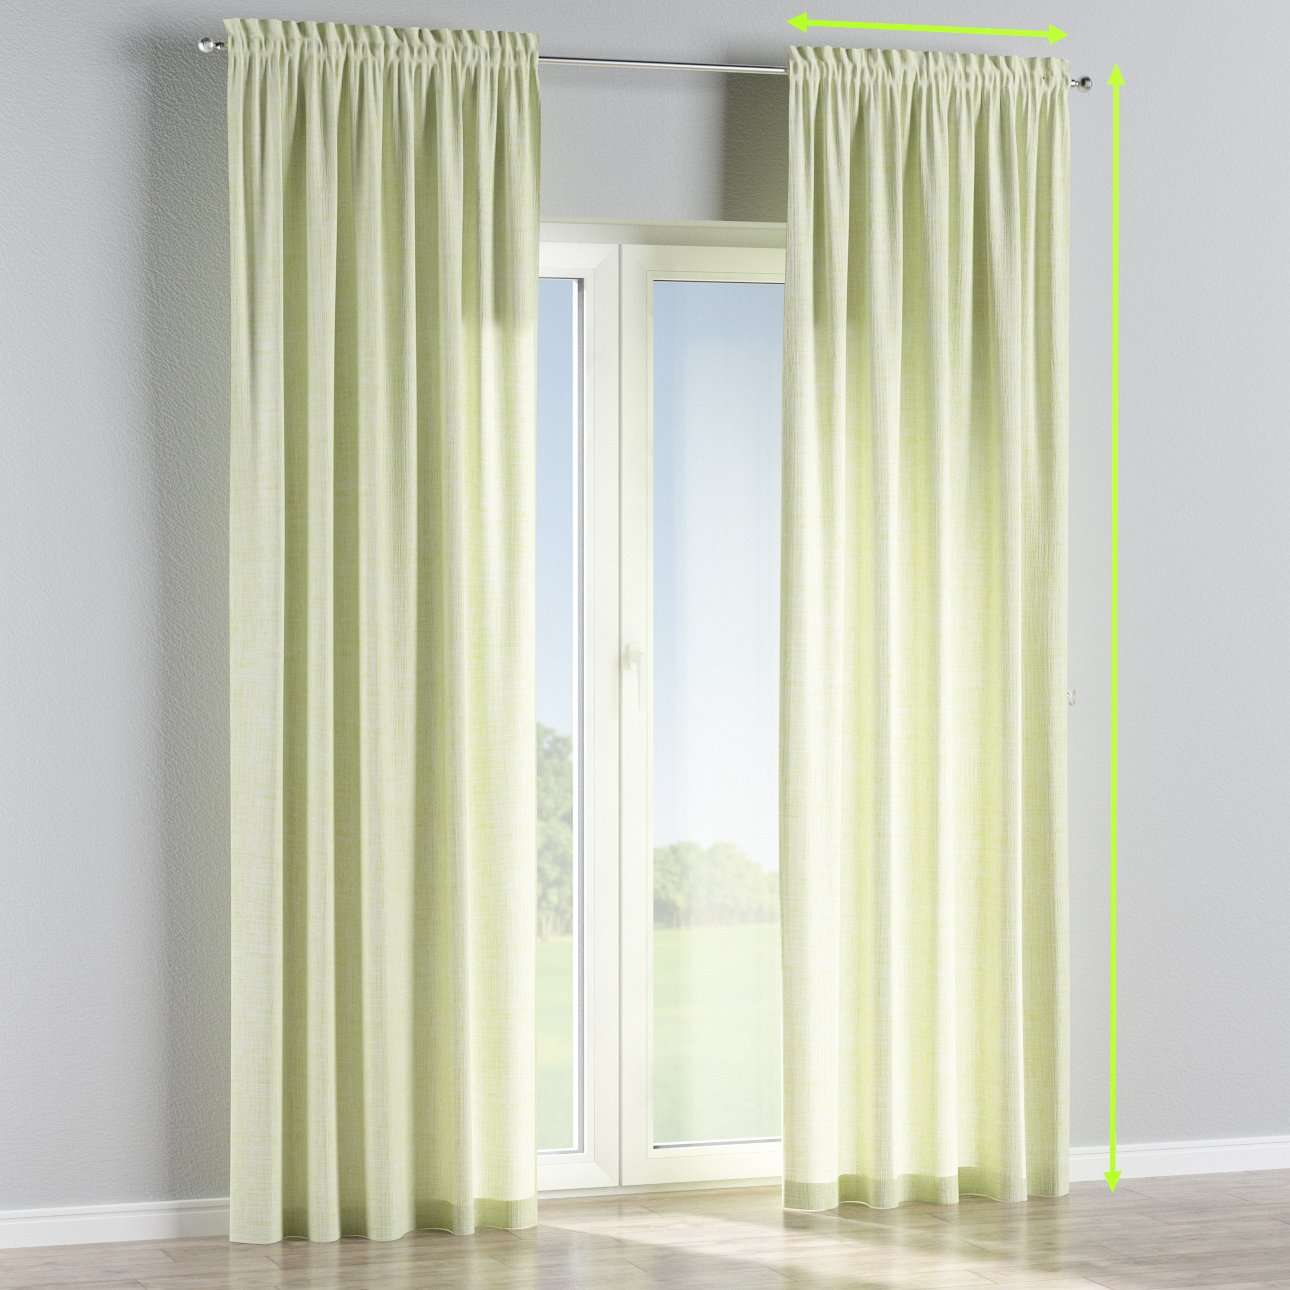 Slot and frill curtains in collection Aquarelle, fabric: 140-73